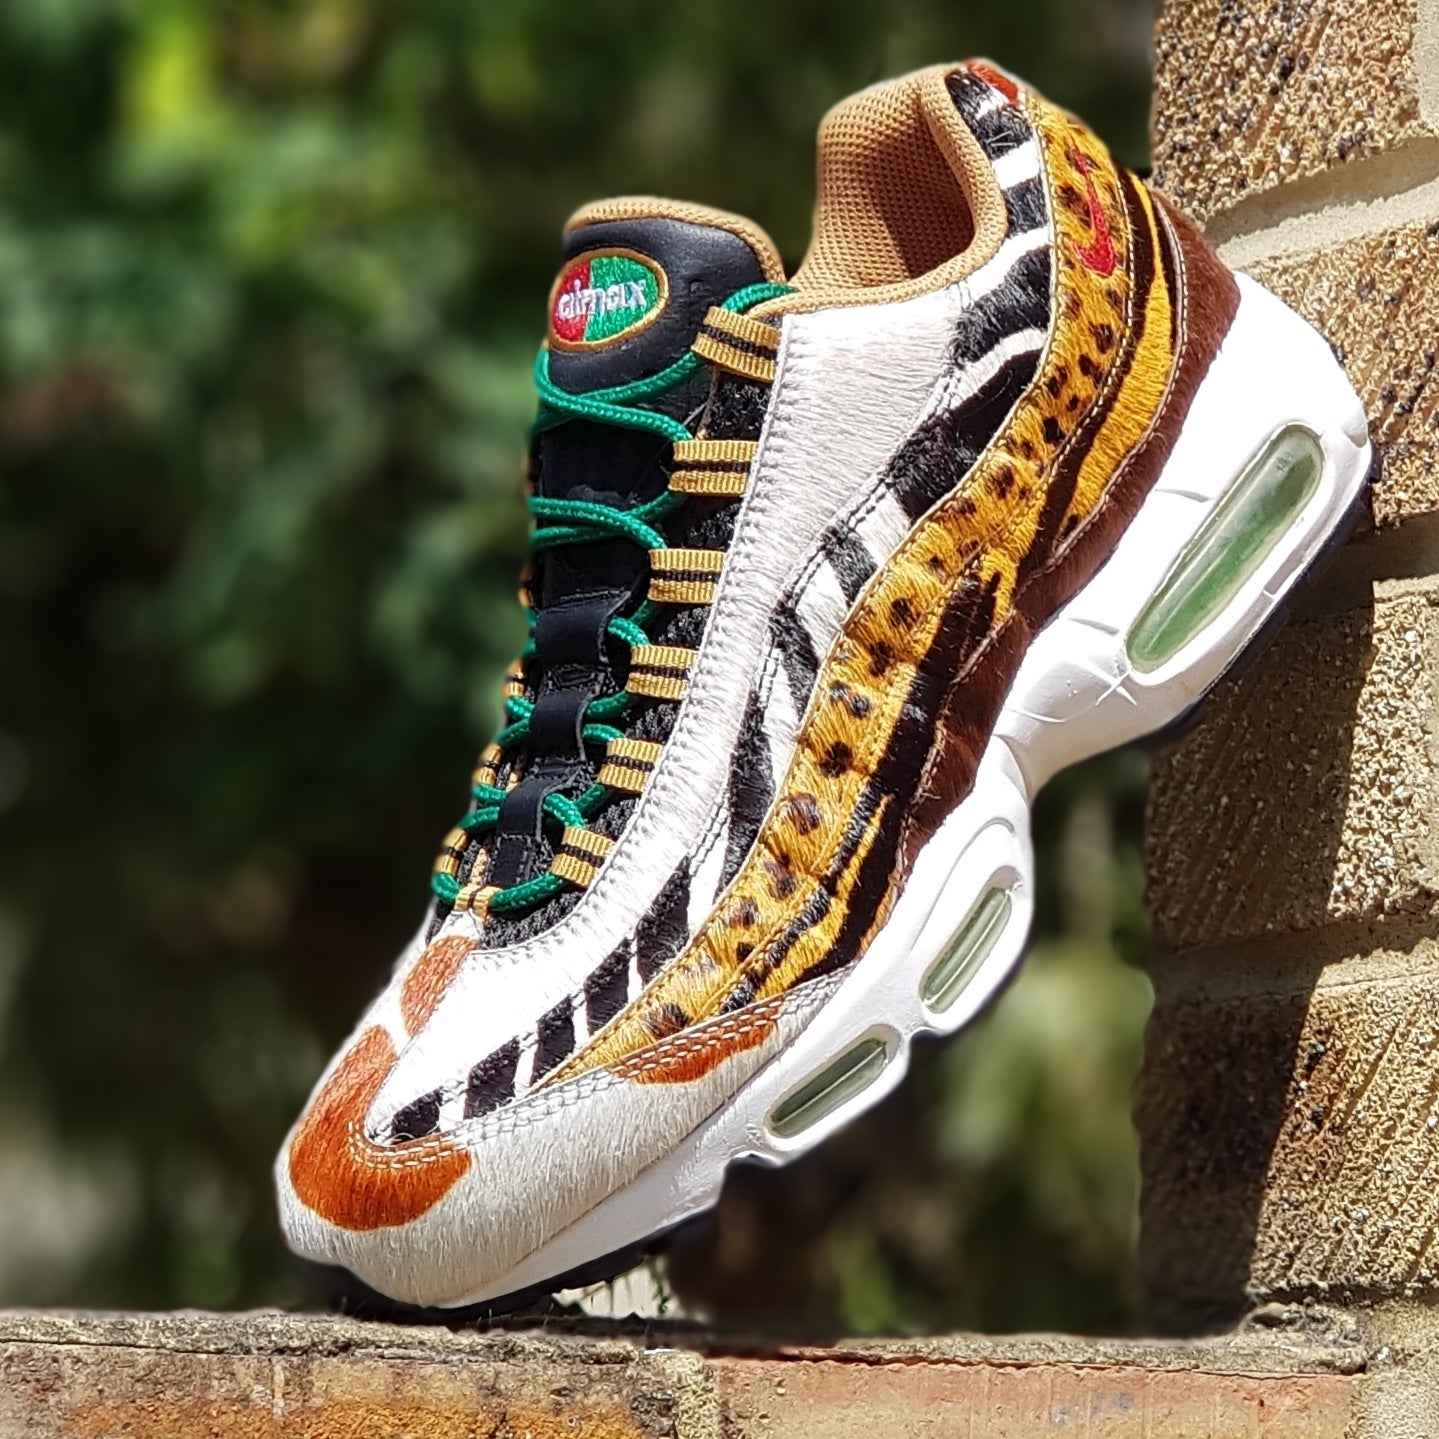 wholesale dealer 35d6d d2891 Nike Air Max 95 Supreme Animal Pack (2007) - UK 8